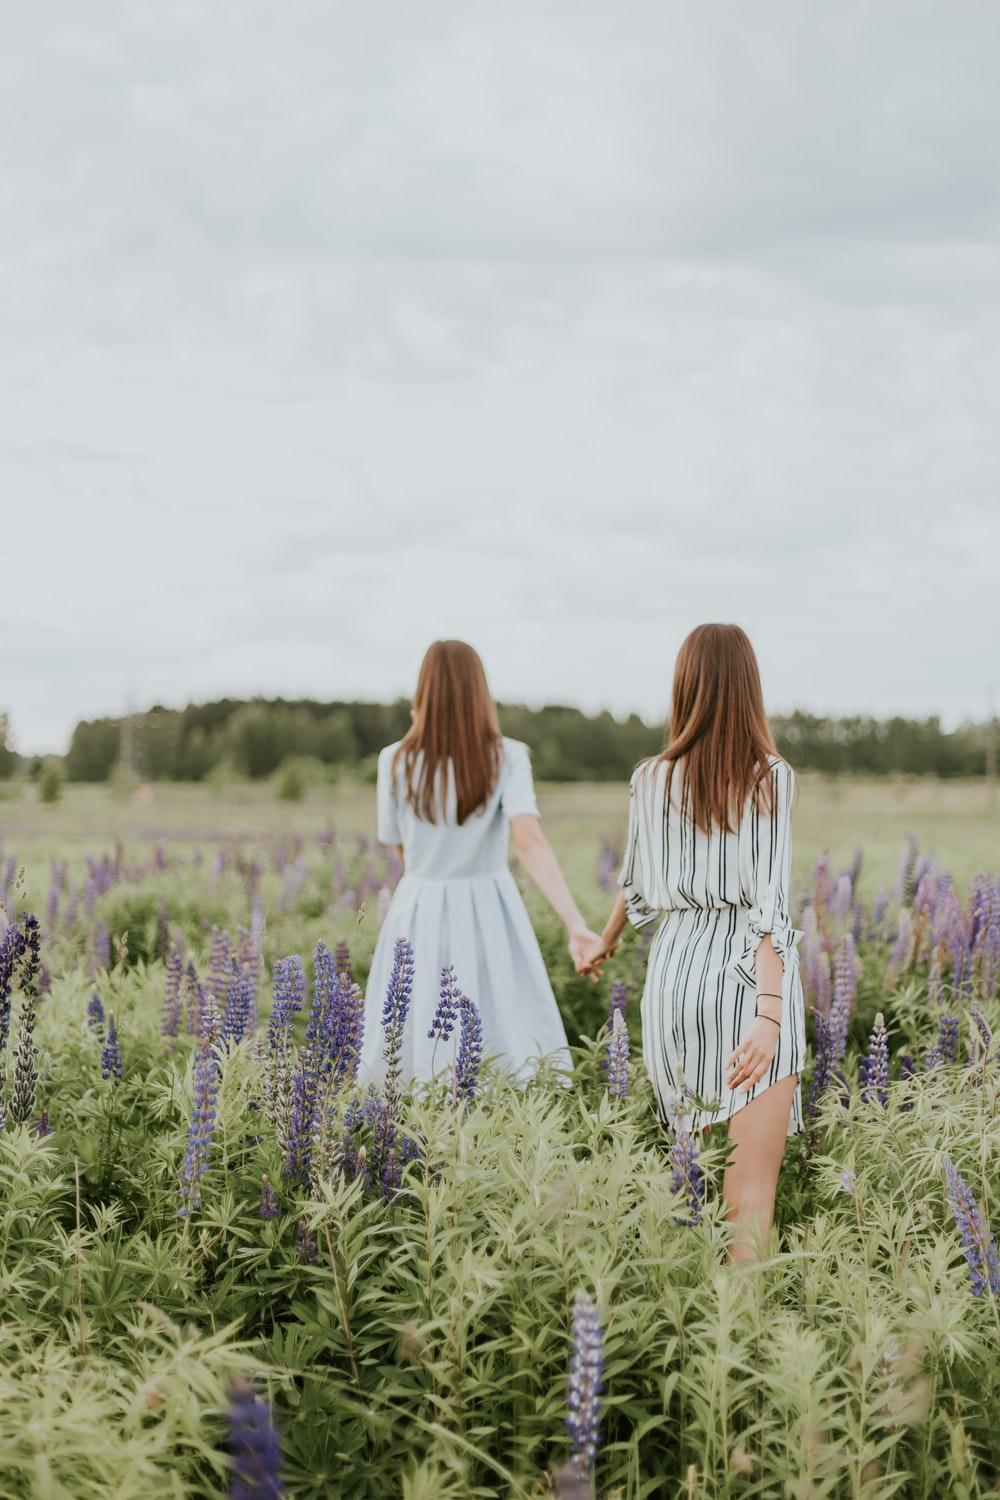 two women surrounded by lavender under nimbus clouds